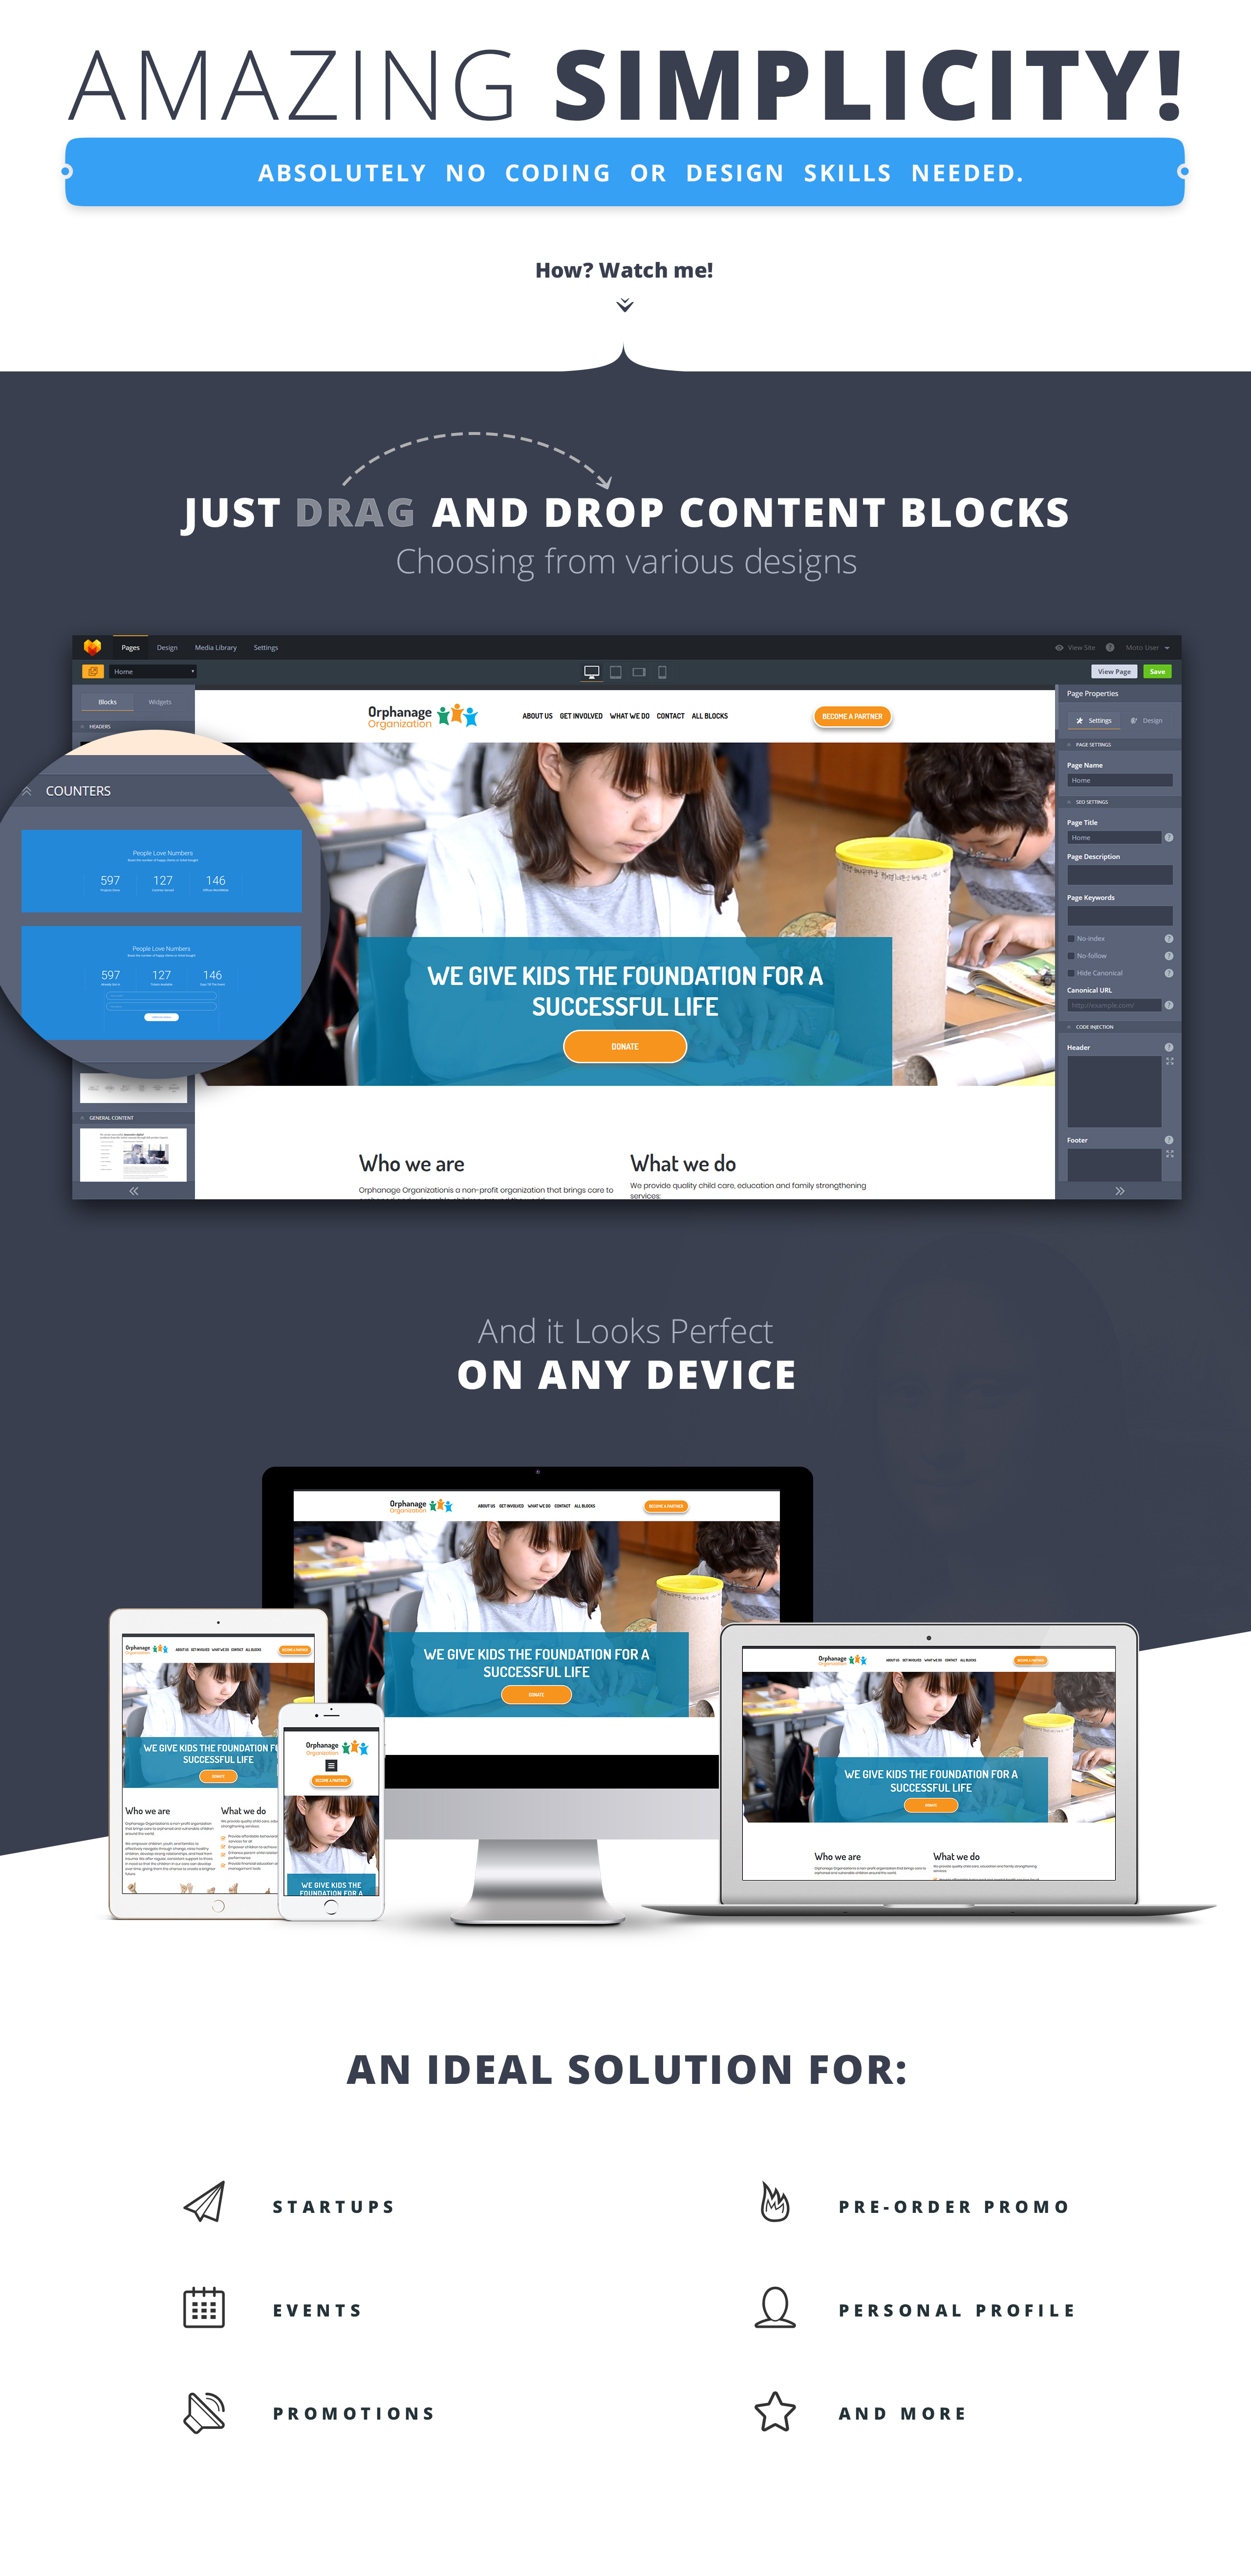 Orphanage - Charity Organization Landing Page Template